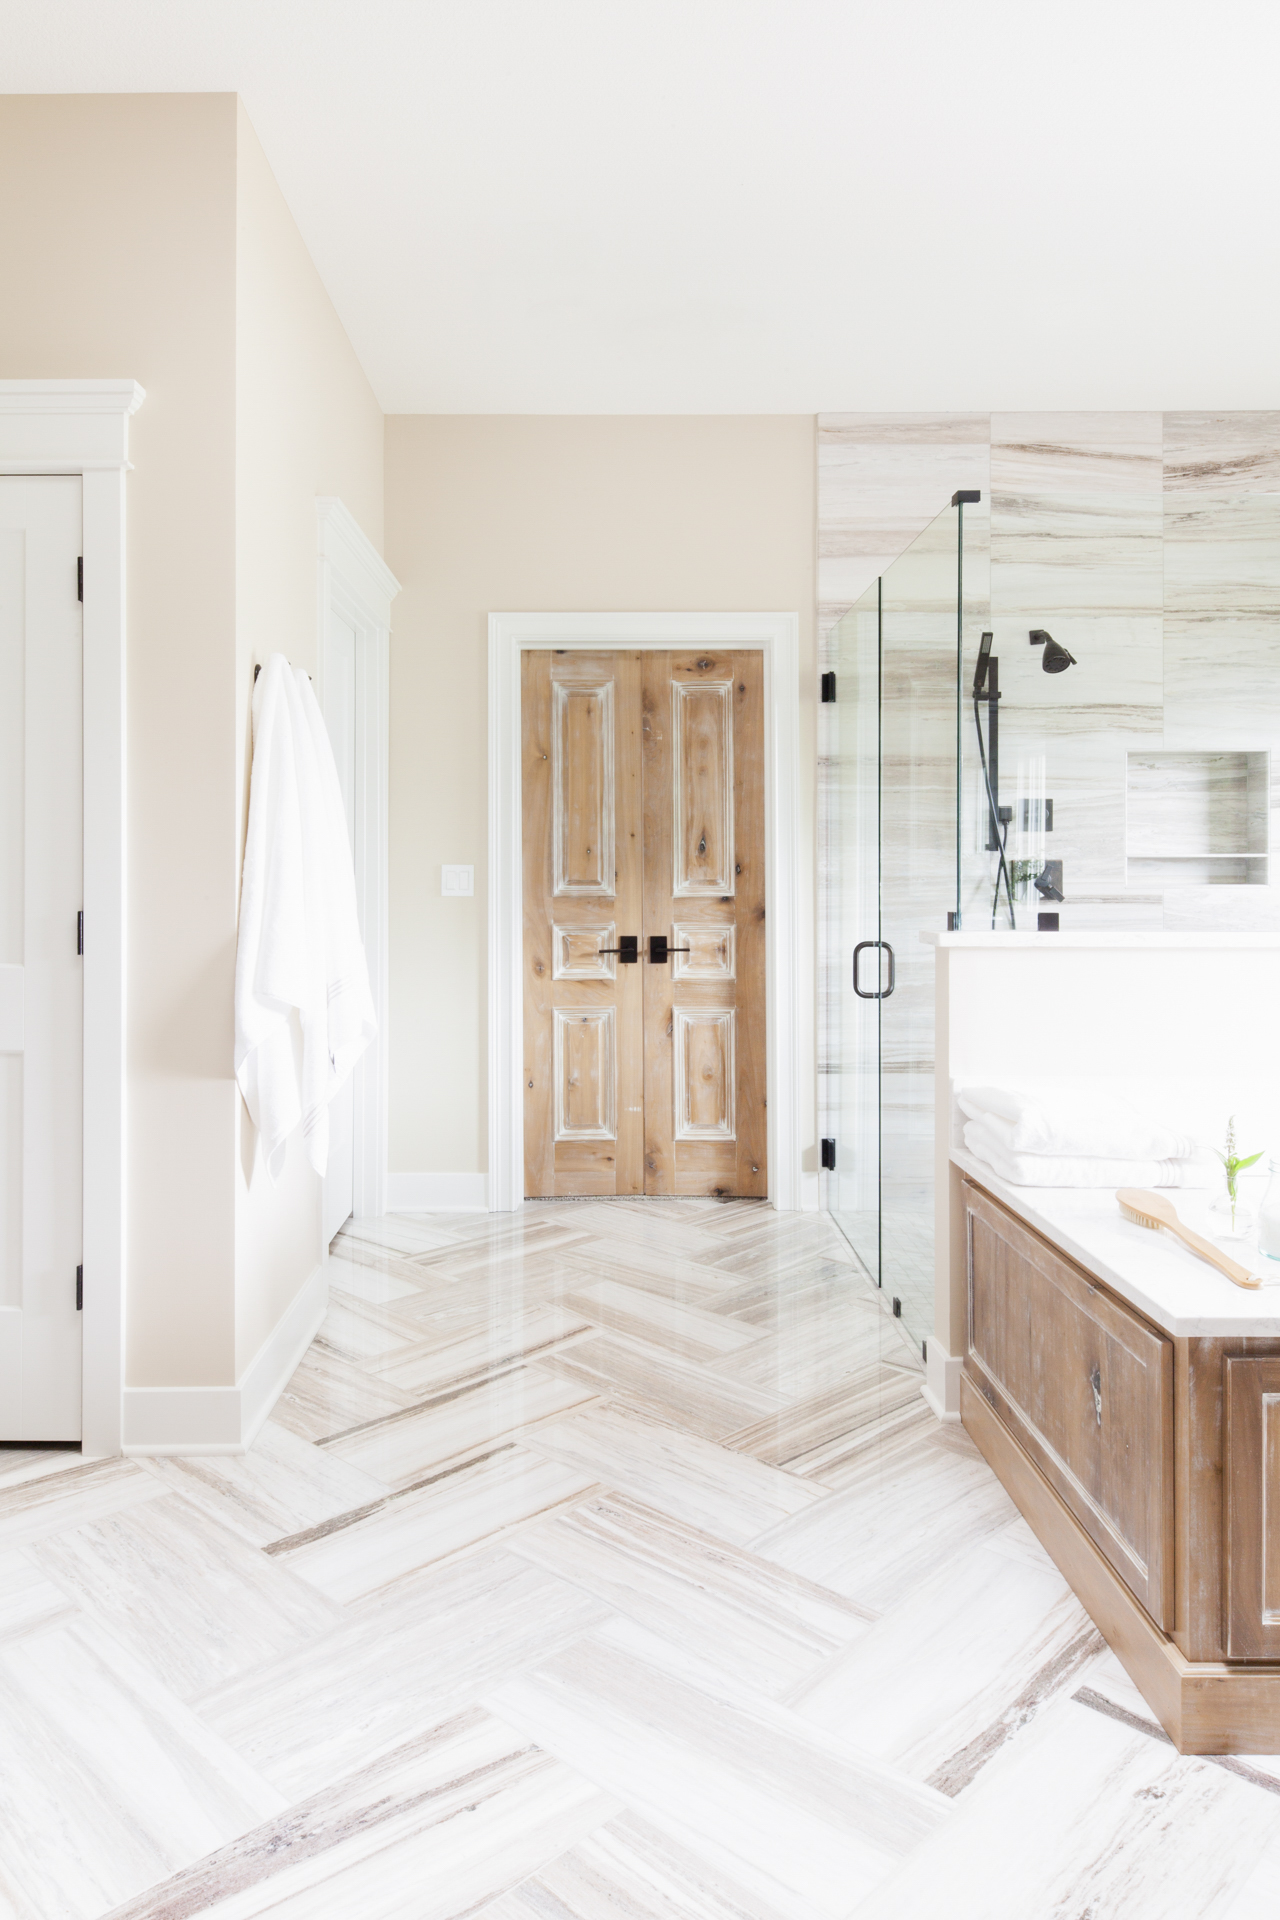 before-and-after-home-reveal-scout-and-nimble-lake-view-luxe-country-interior-design-luxury-bathroom-poplar-wood-doors-palo-sandro-marble-floor-herringbone-zero-entry-shower-basketweave-tile-8.jpg